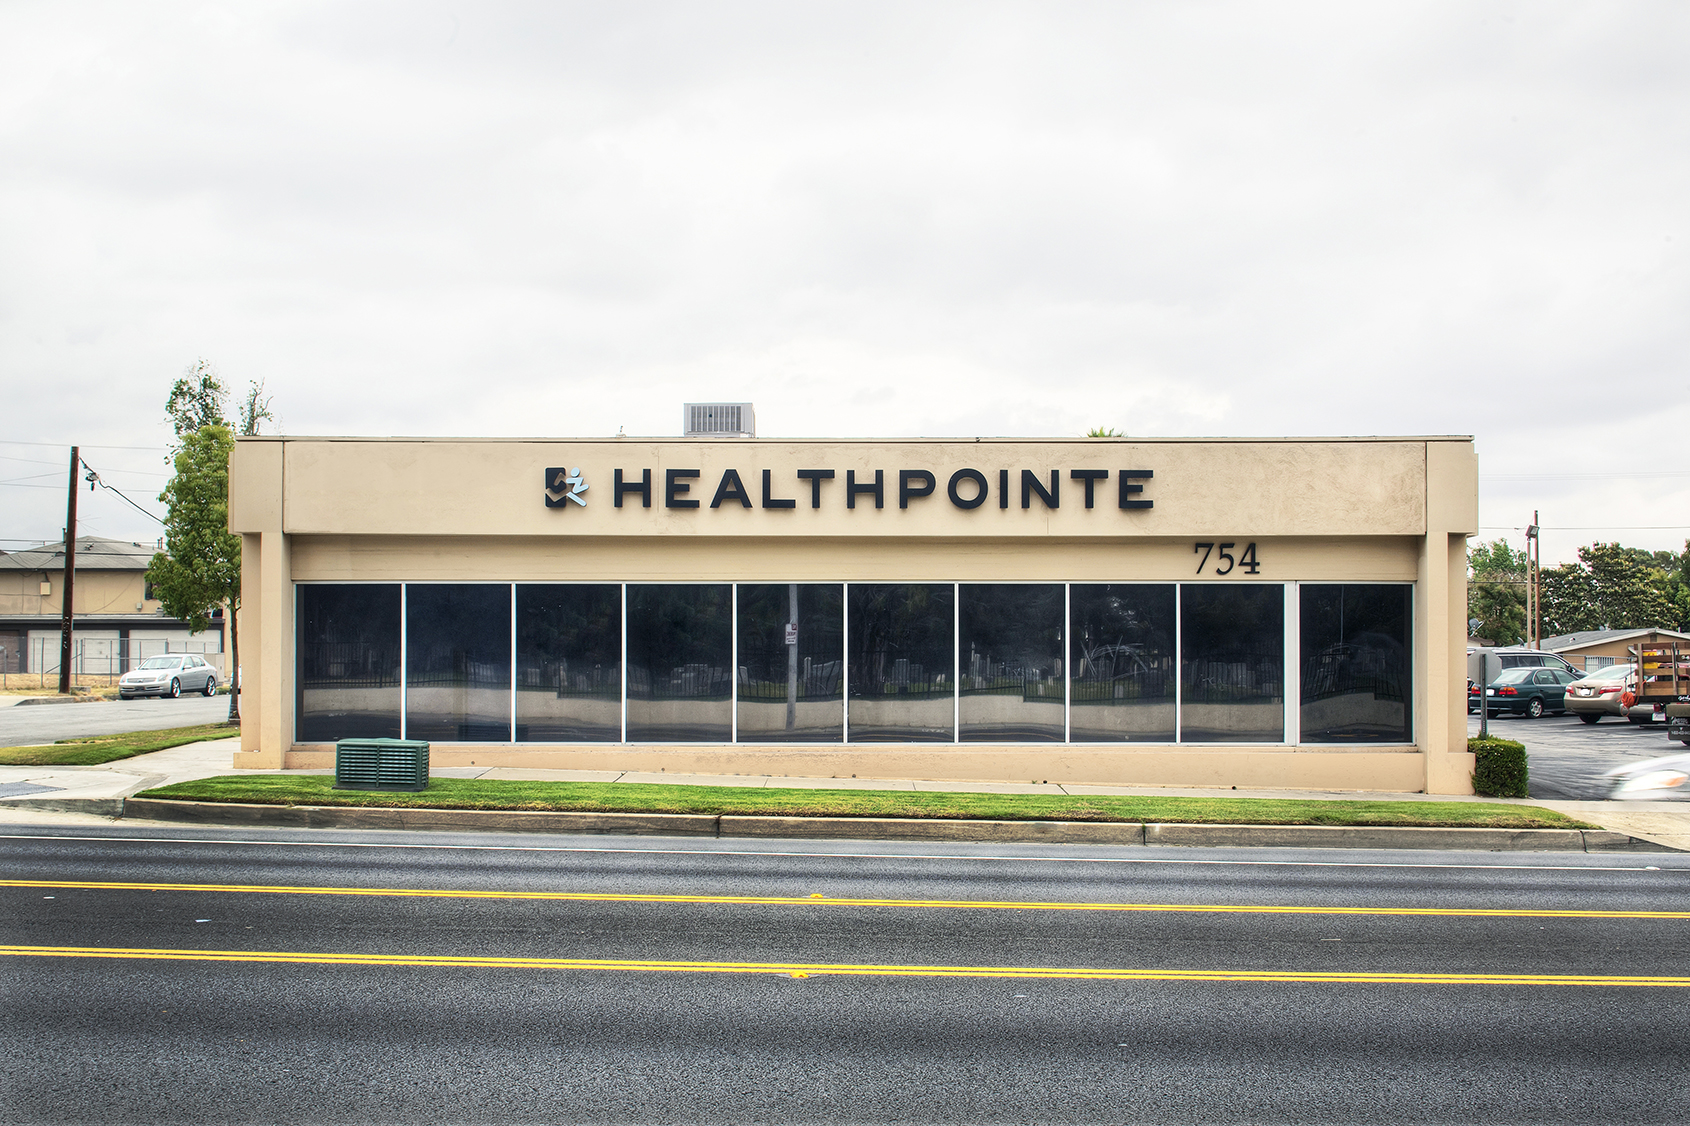 Healthpointe reviews | Medical Centers at 754 N Mountain Ave - Ontario CA